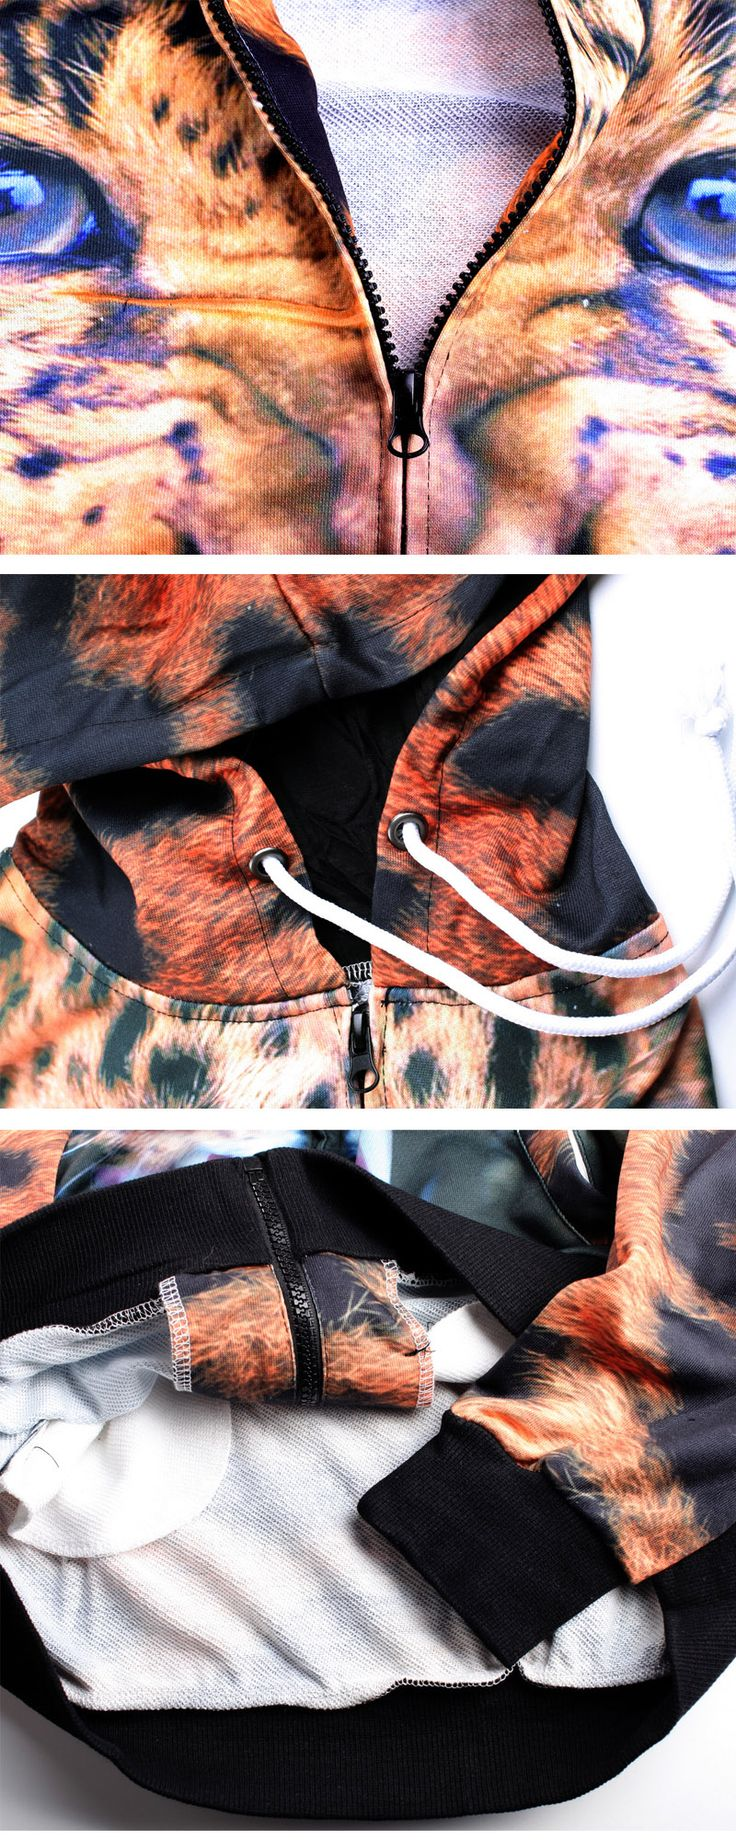 Fashionable 3D Leopard Printing Hooded Coat - Orange + Brown (L) - Free Shipping - DealExtreme